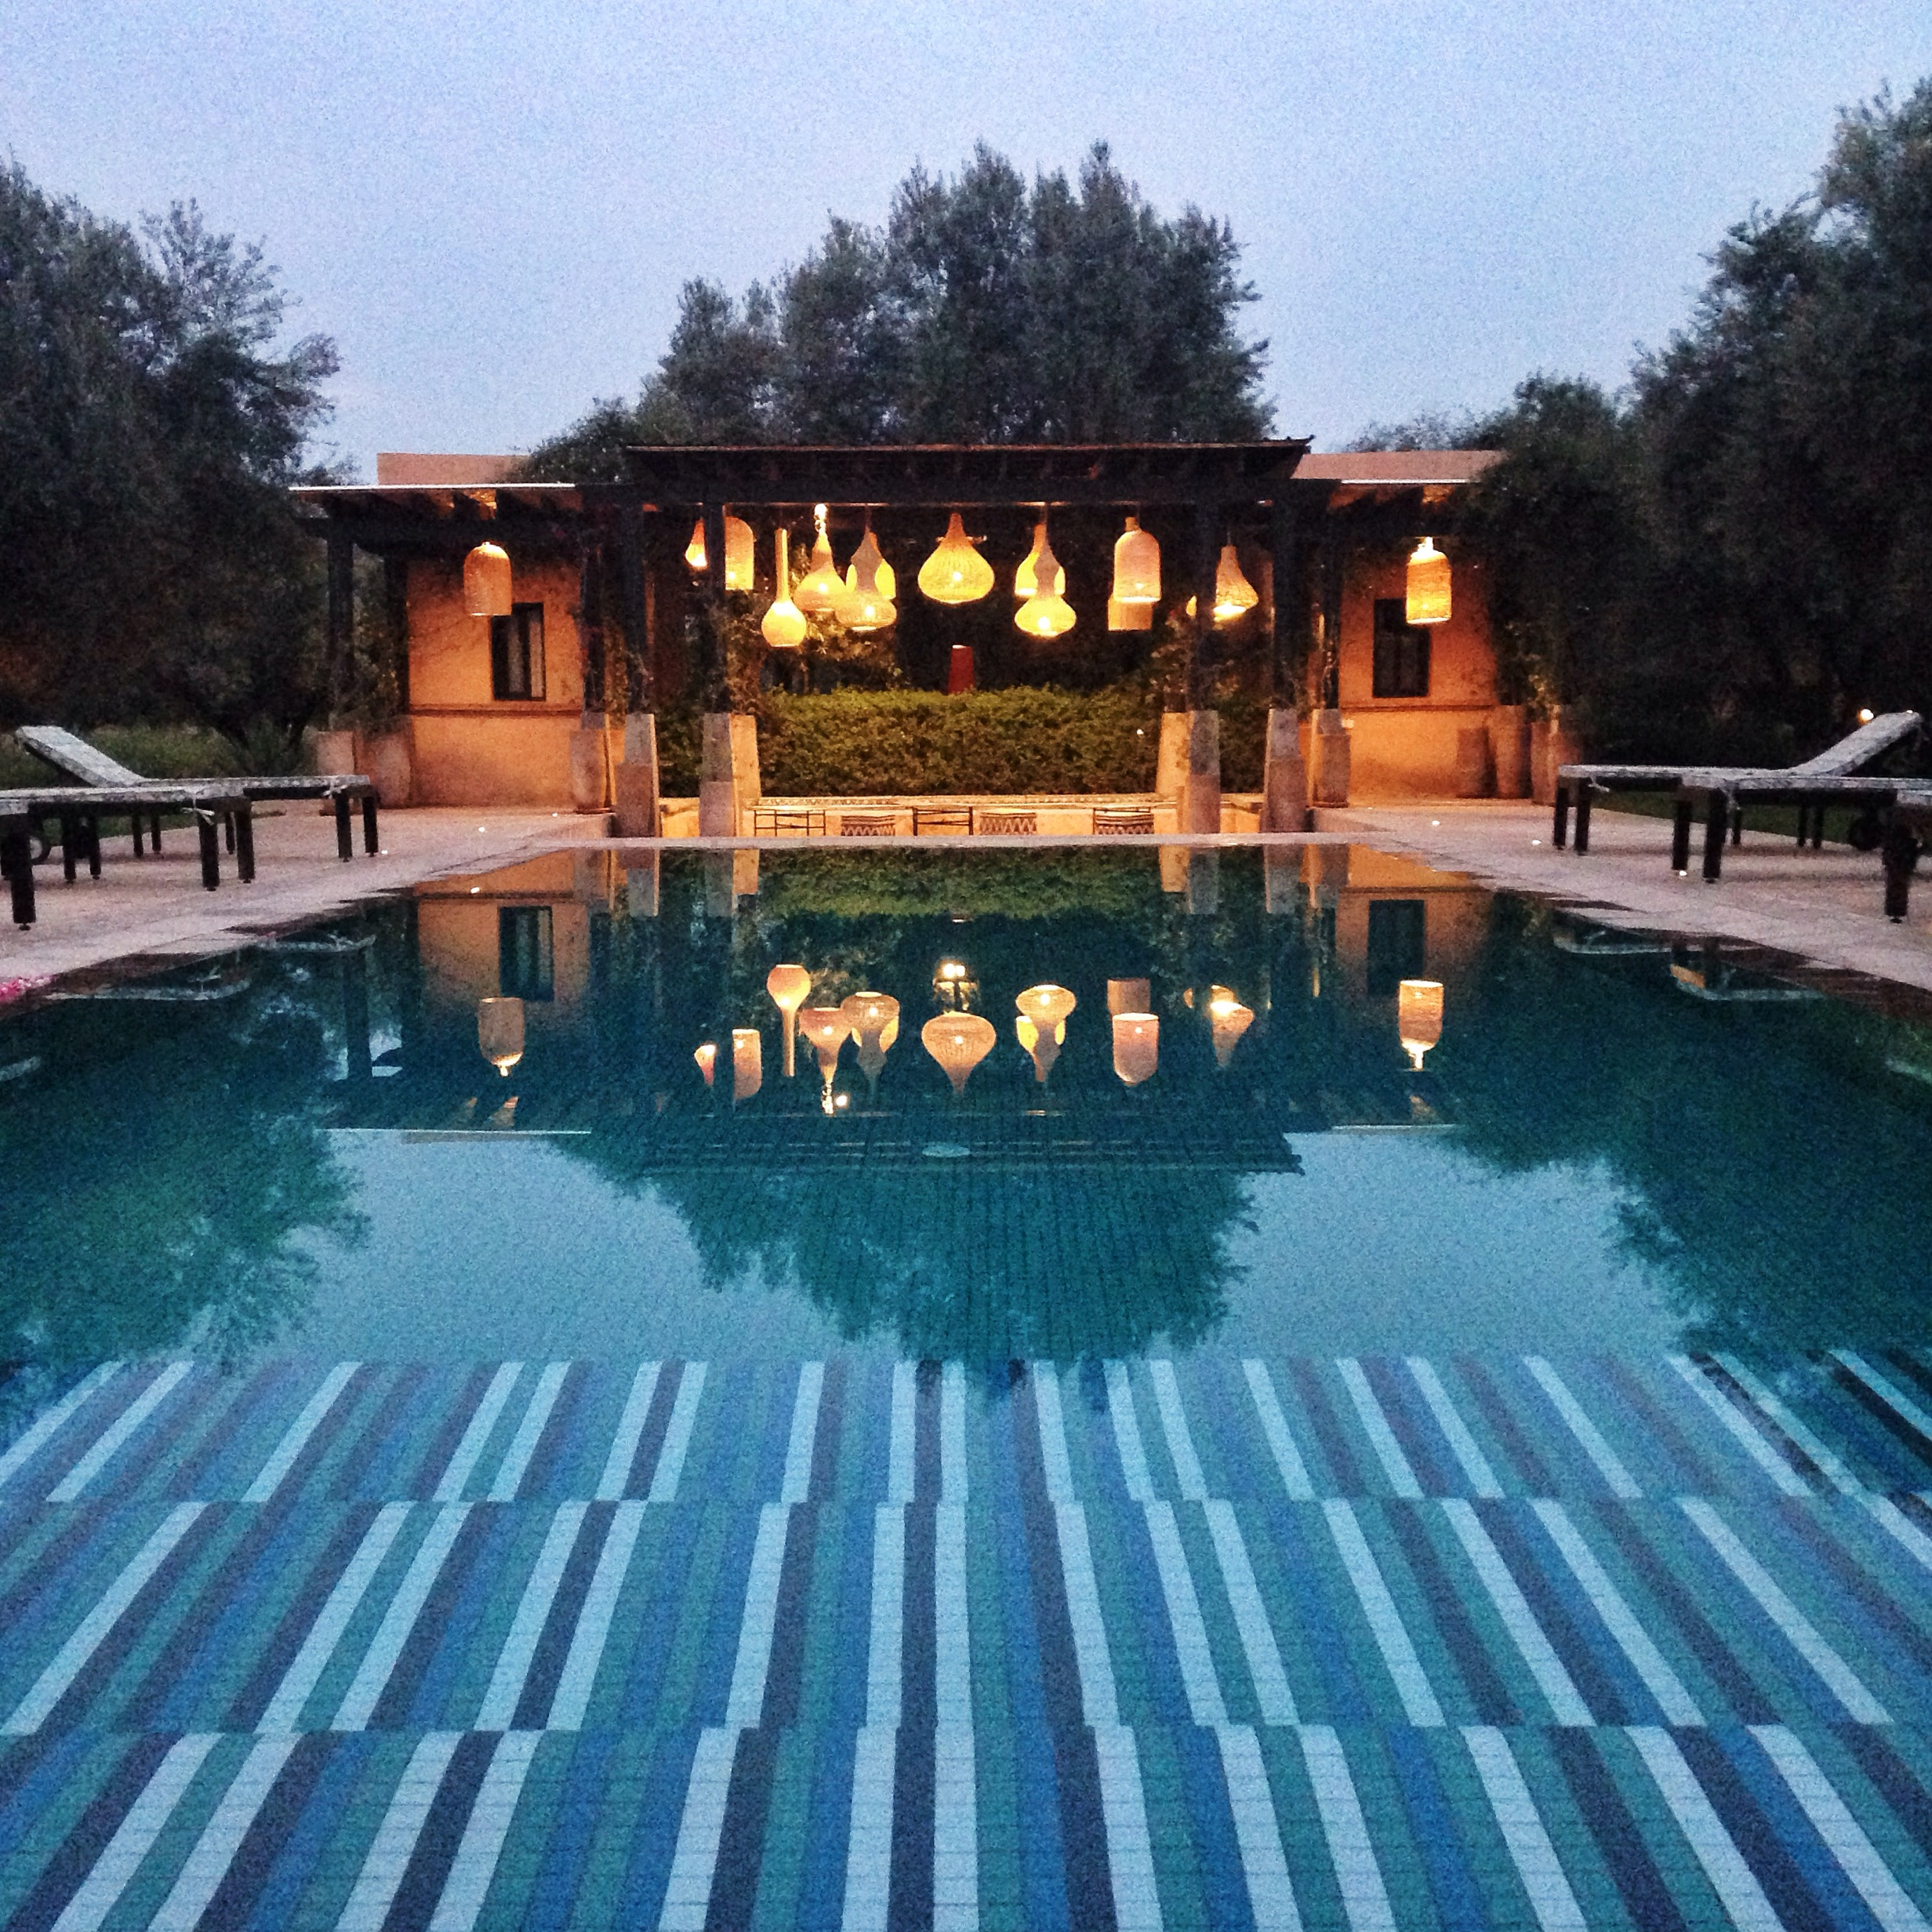 Evening Pool with Lanterns Peacock Pavilions  | EAT.PRAY.MOVE Yoga Retreat | Marrakesh, Morocco